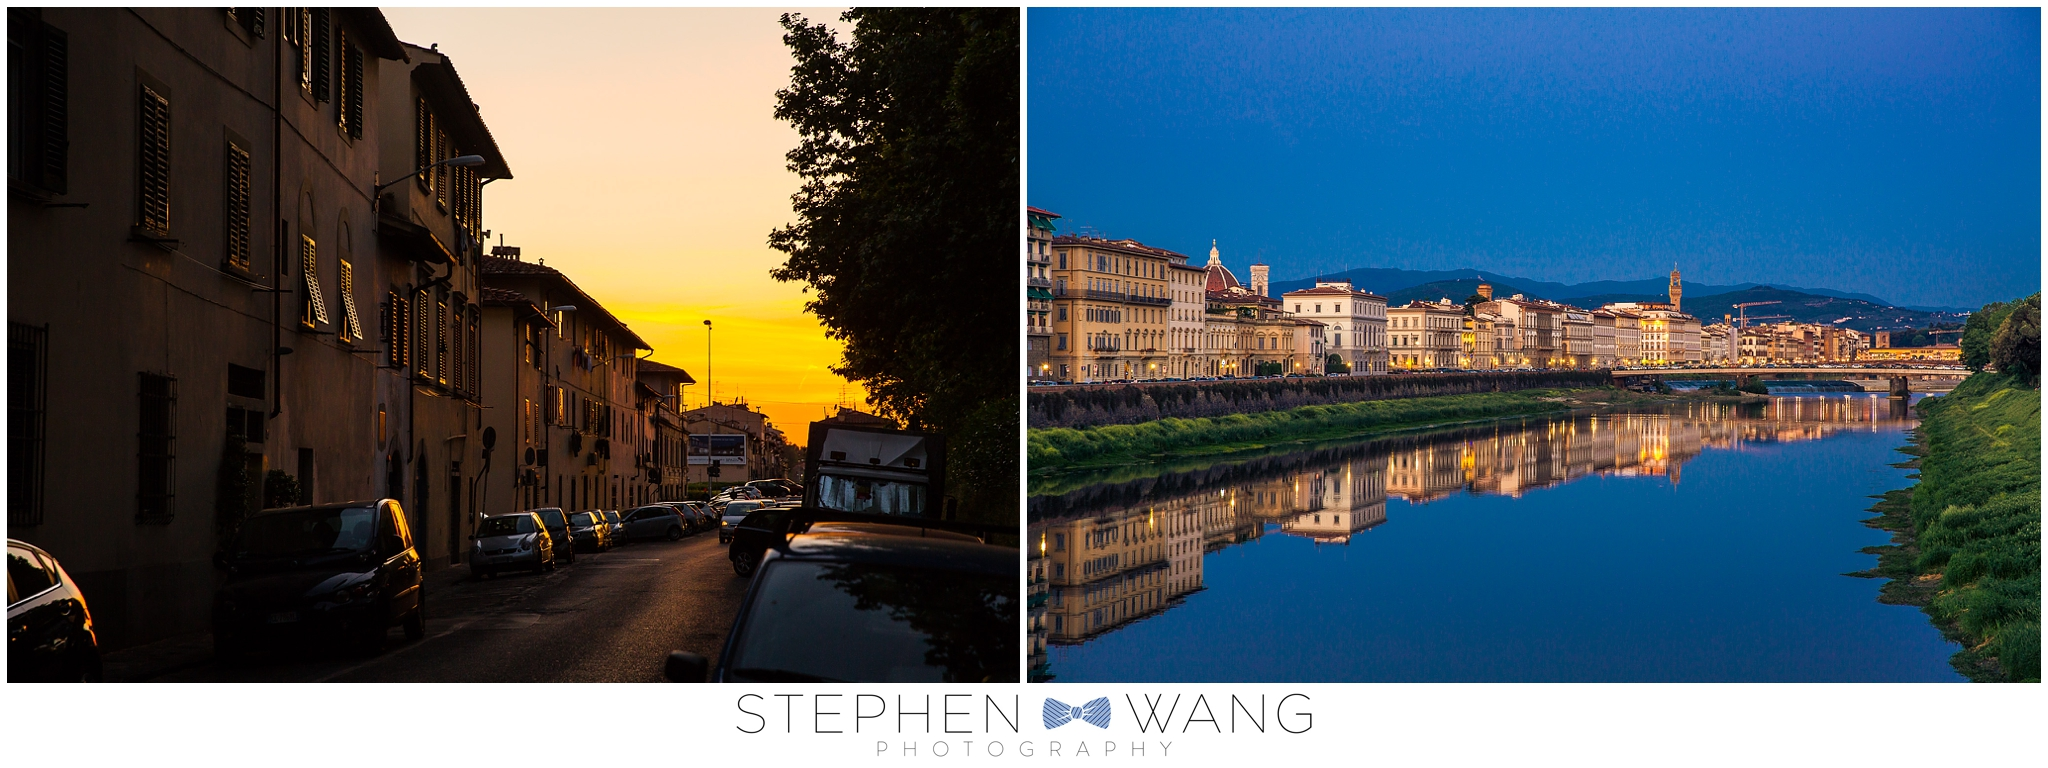 I took a little stroll around the neighborhood our first night in Florence.  I loved the warm sun low in the sky hitting the buildings, and the view of the city from a bridge over the river Arno.